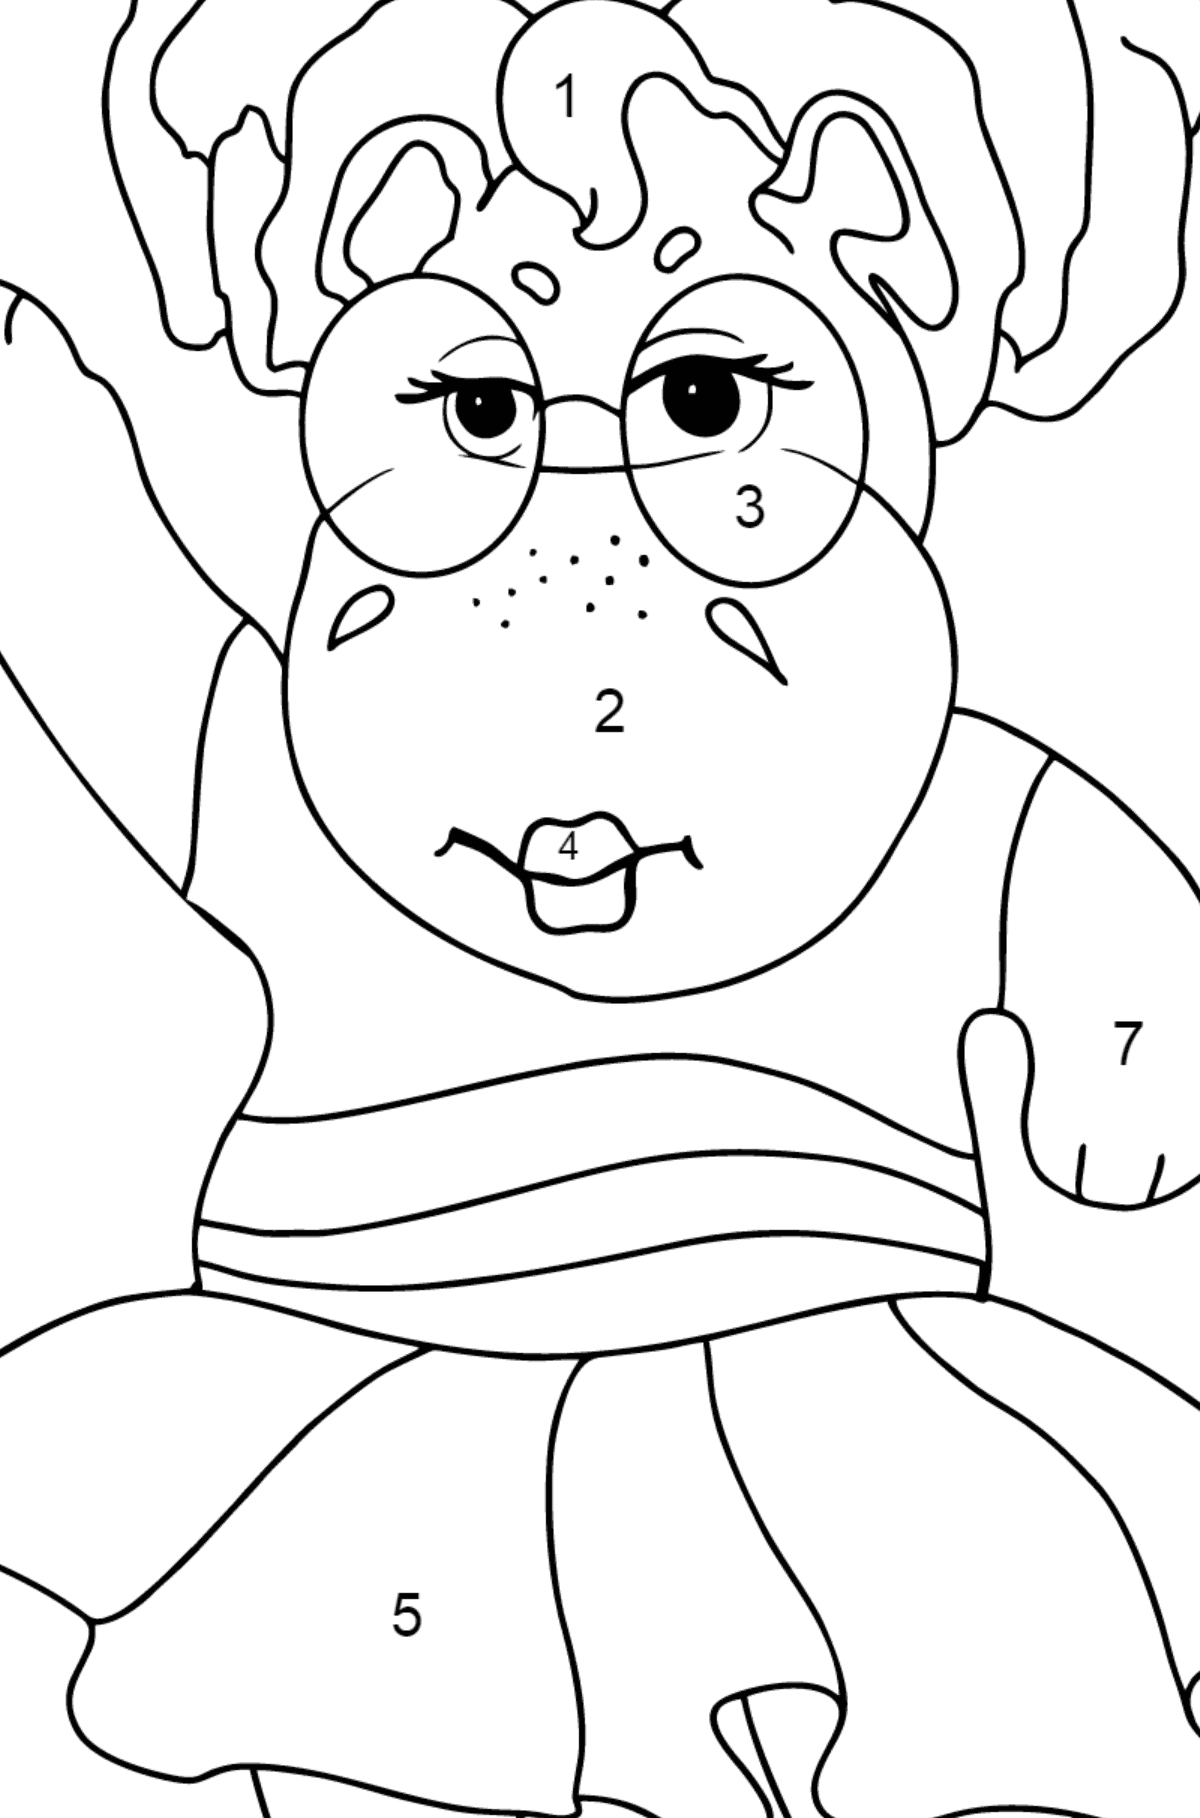 Coloring Page - A Hippo is Dancing in Sunglasses for Kids  - Color by Number